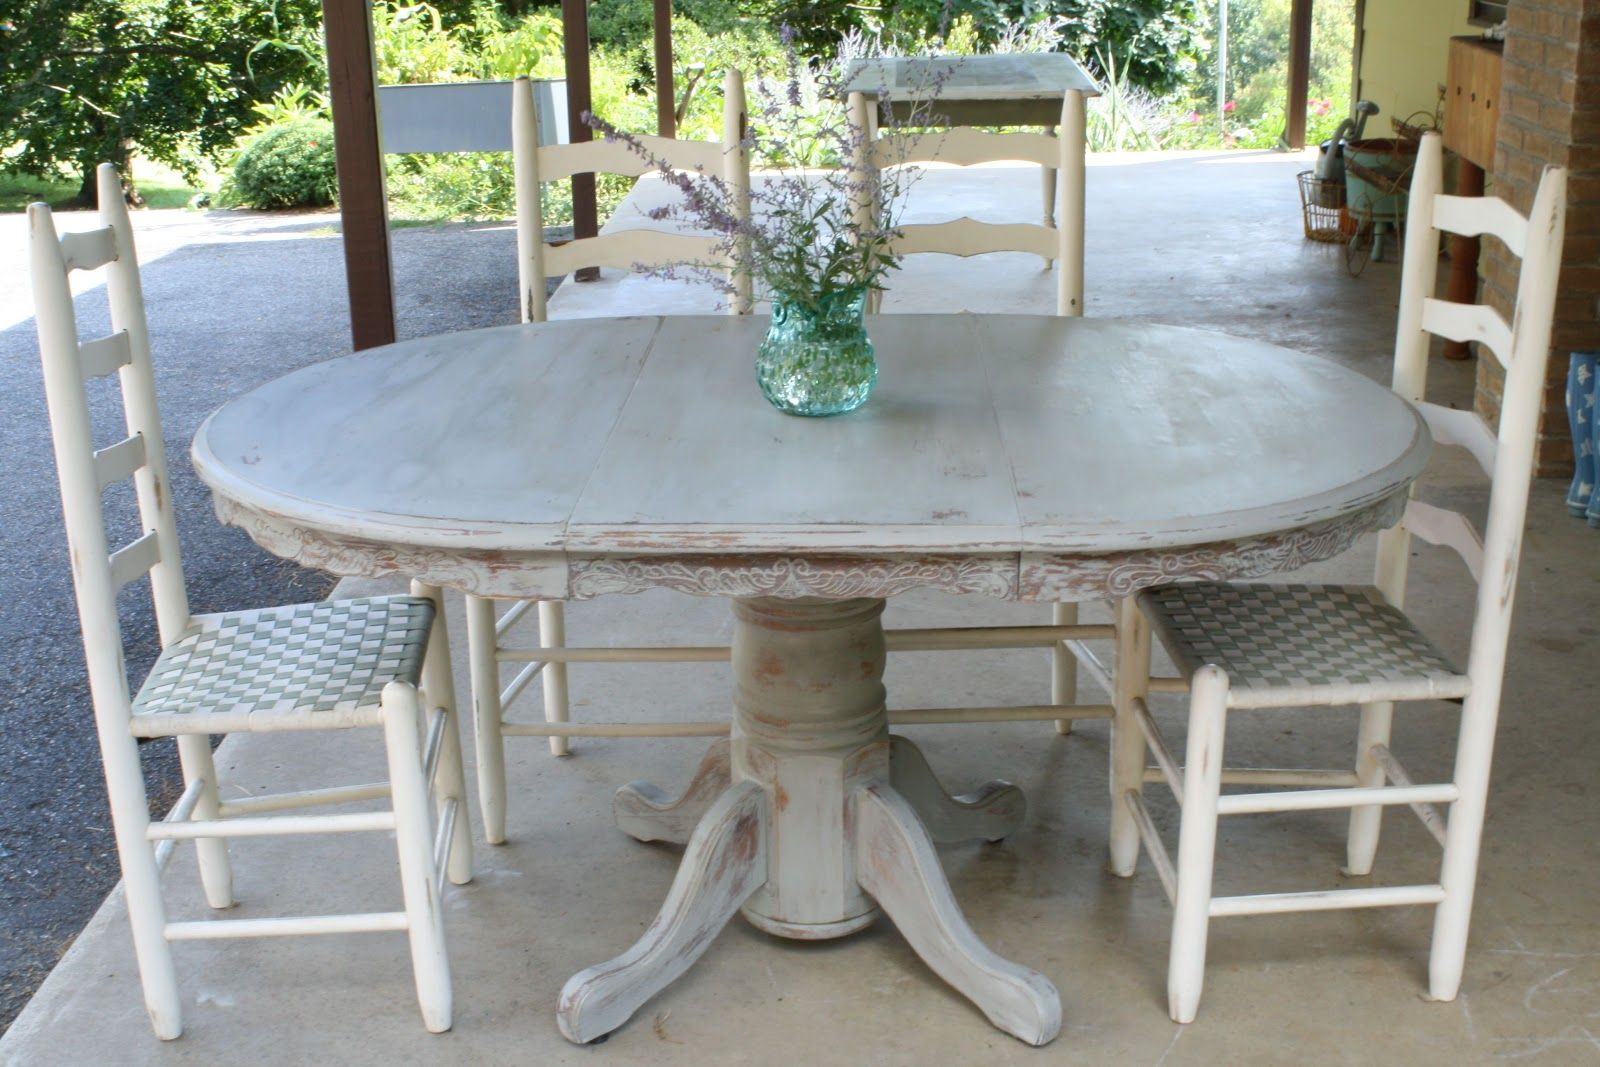 Primitive Proper Weathered Paris Gray Dining Table How Melted Wax Helps Distress Painting